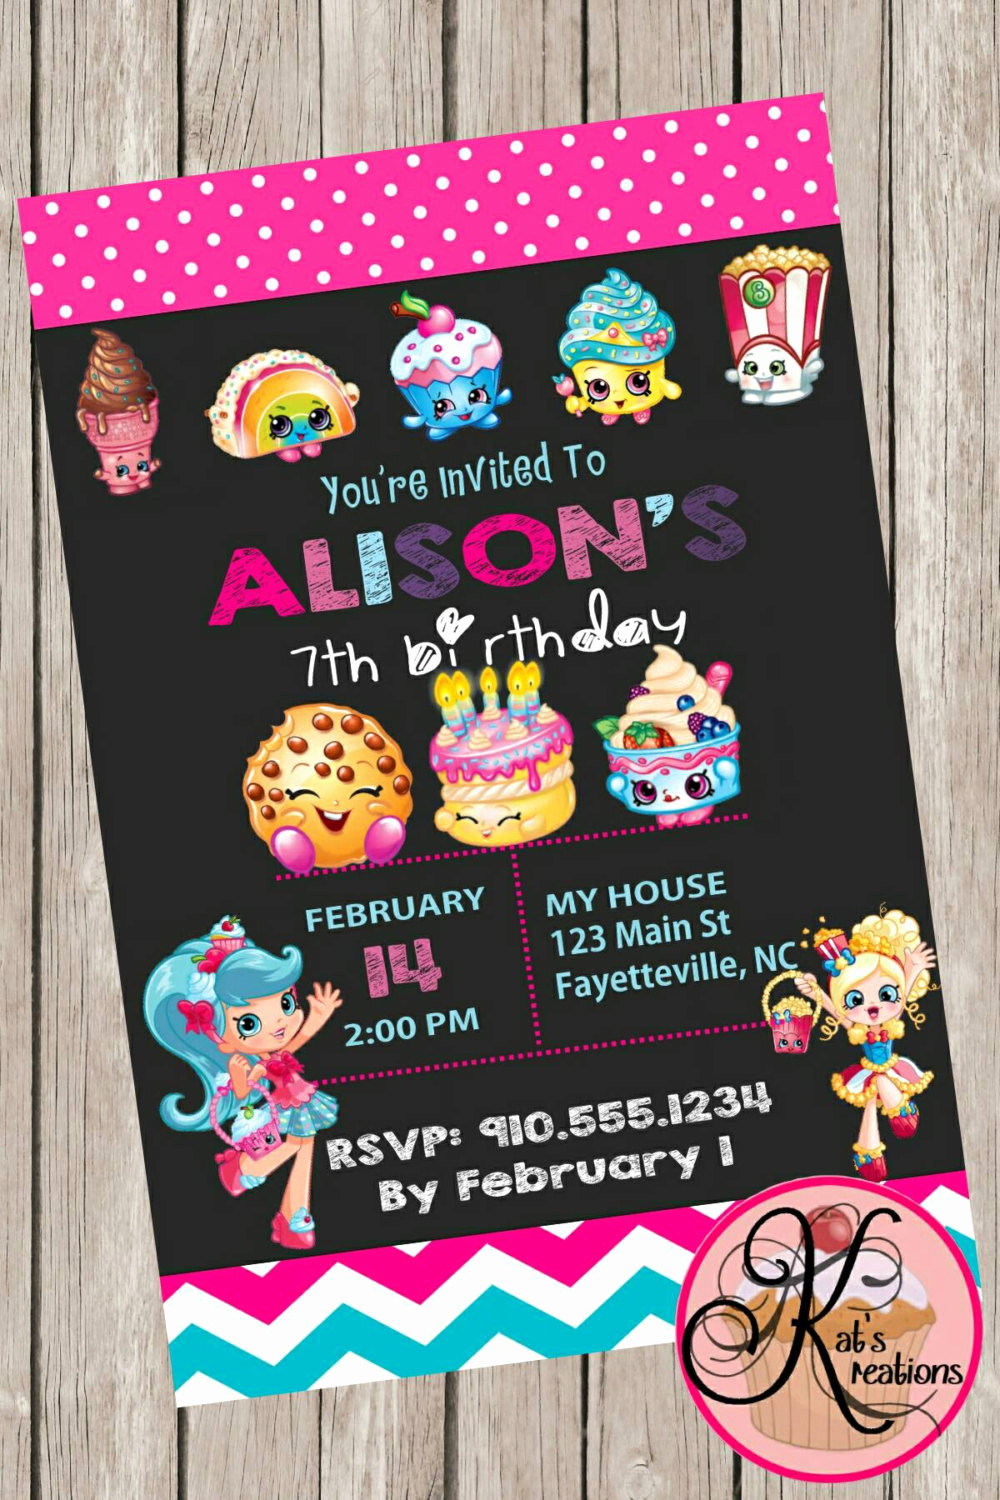 Free Shopkins Invitation Template Inspirational Shopkins Birthday Party Printable Invitation by Katskreations3